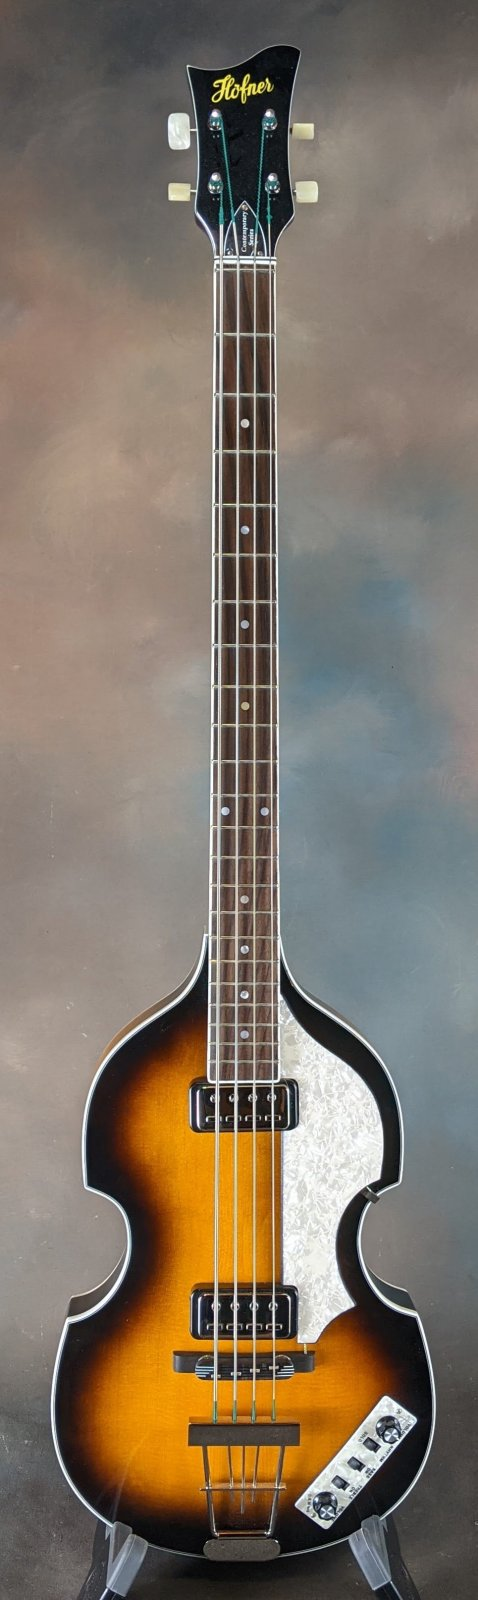 Hofner HCT500/1-SB Contemporary Violin Bass with Hardshell Case